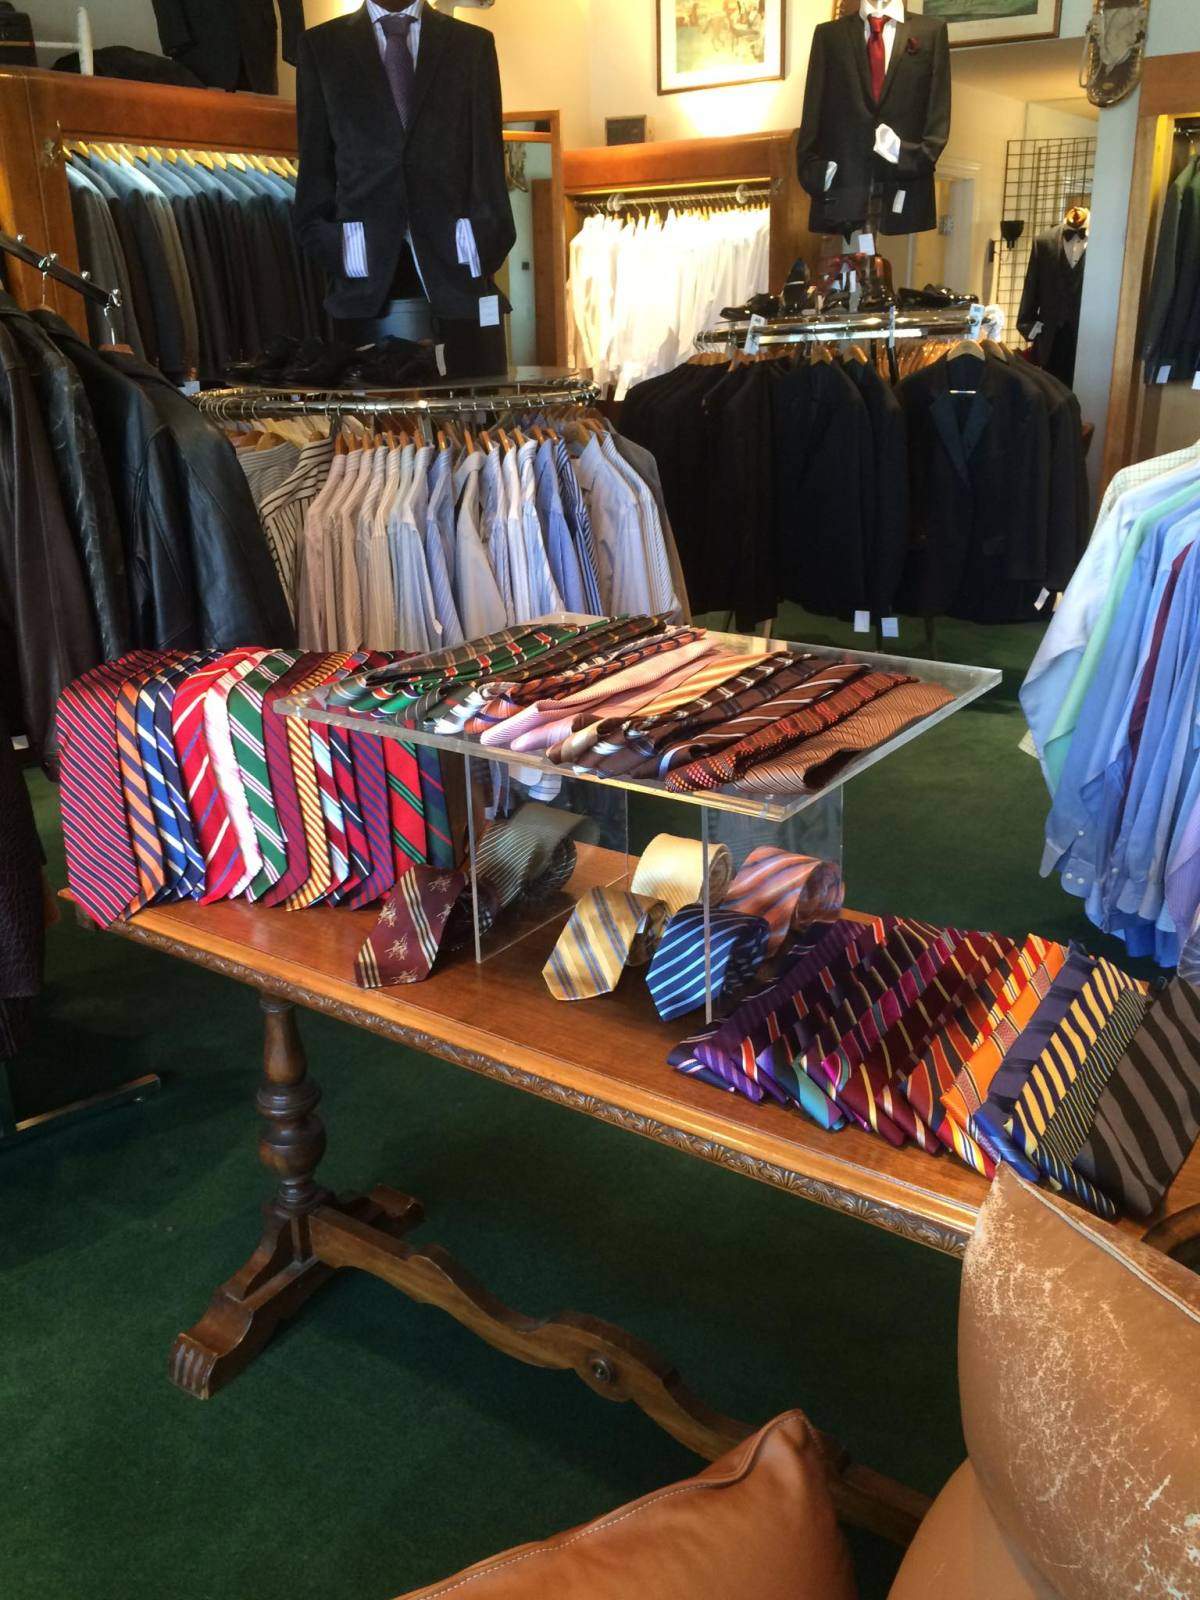 f5ddc80278 Top 6 San Antonio consignment shops for high style on a small budget ...